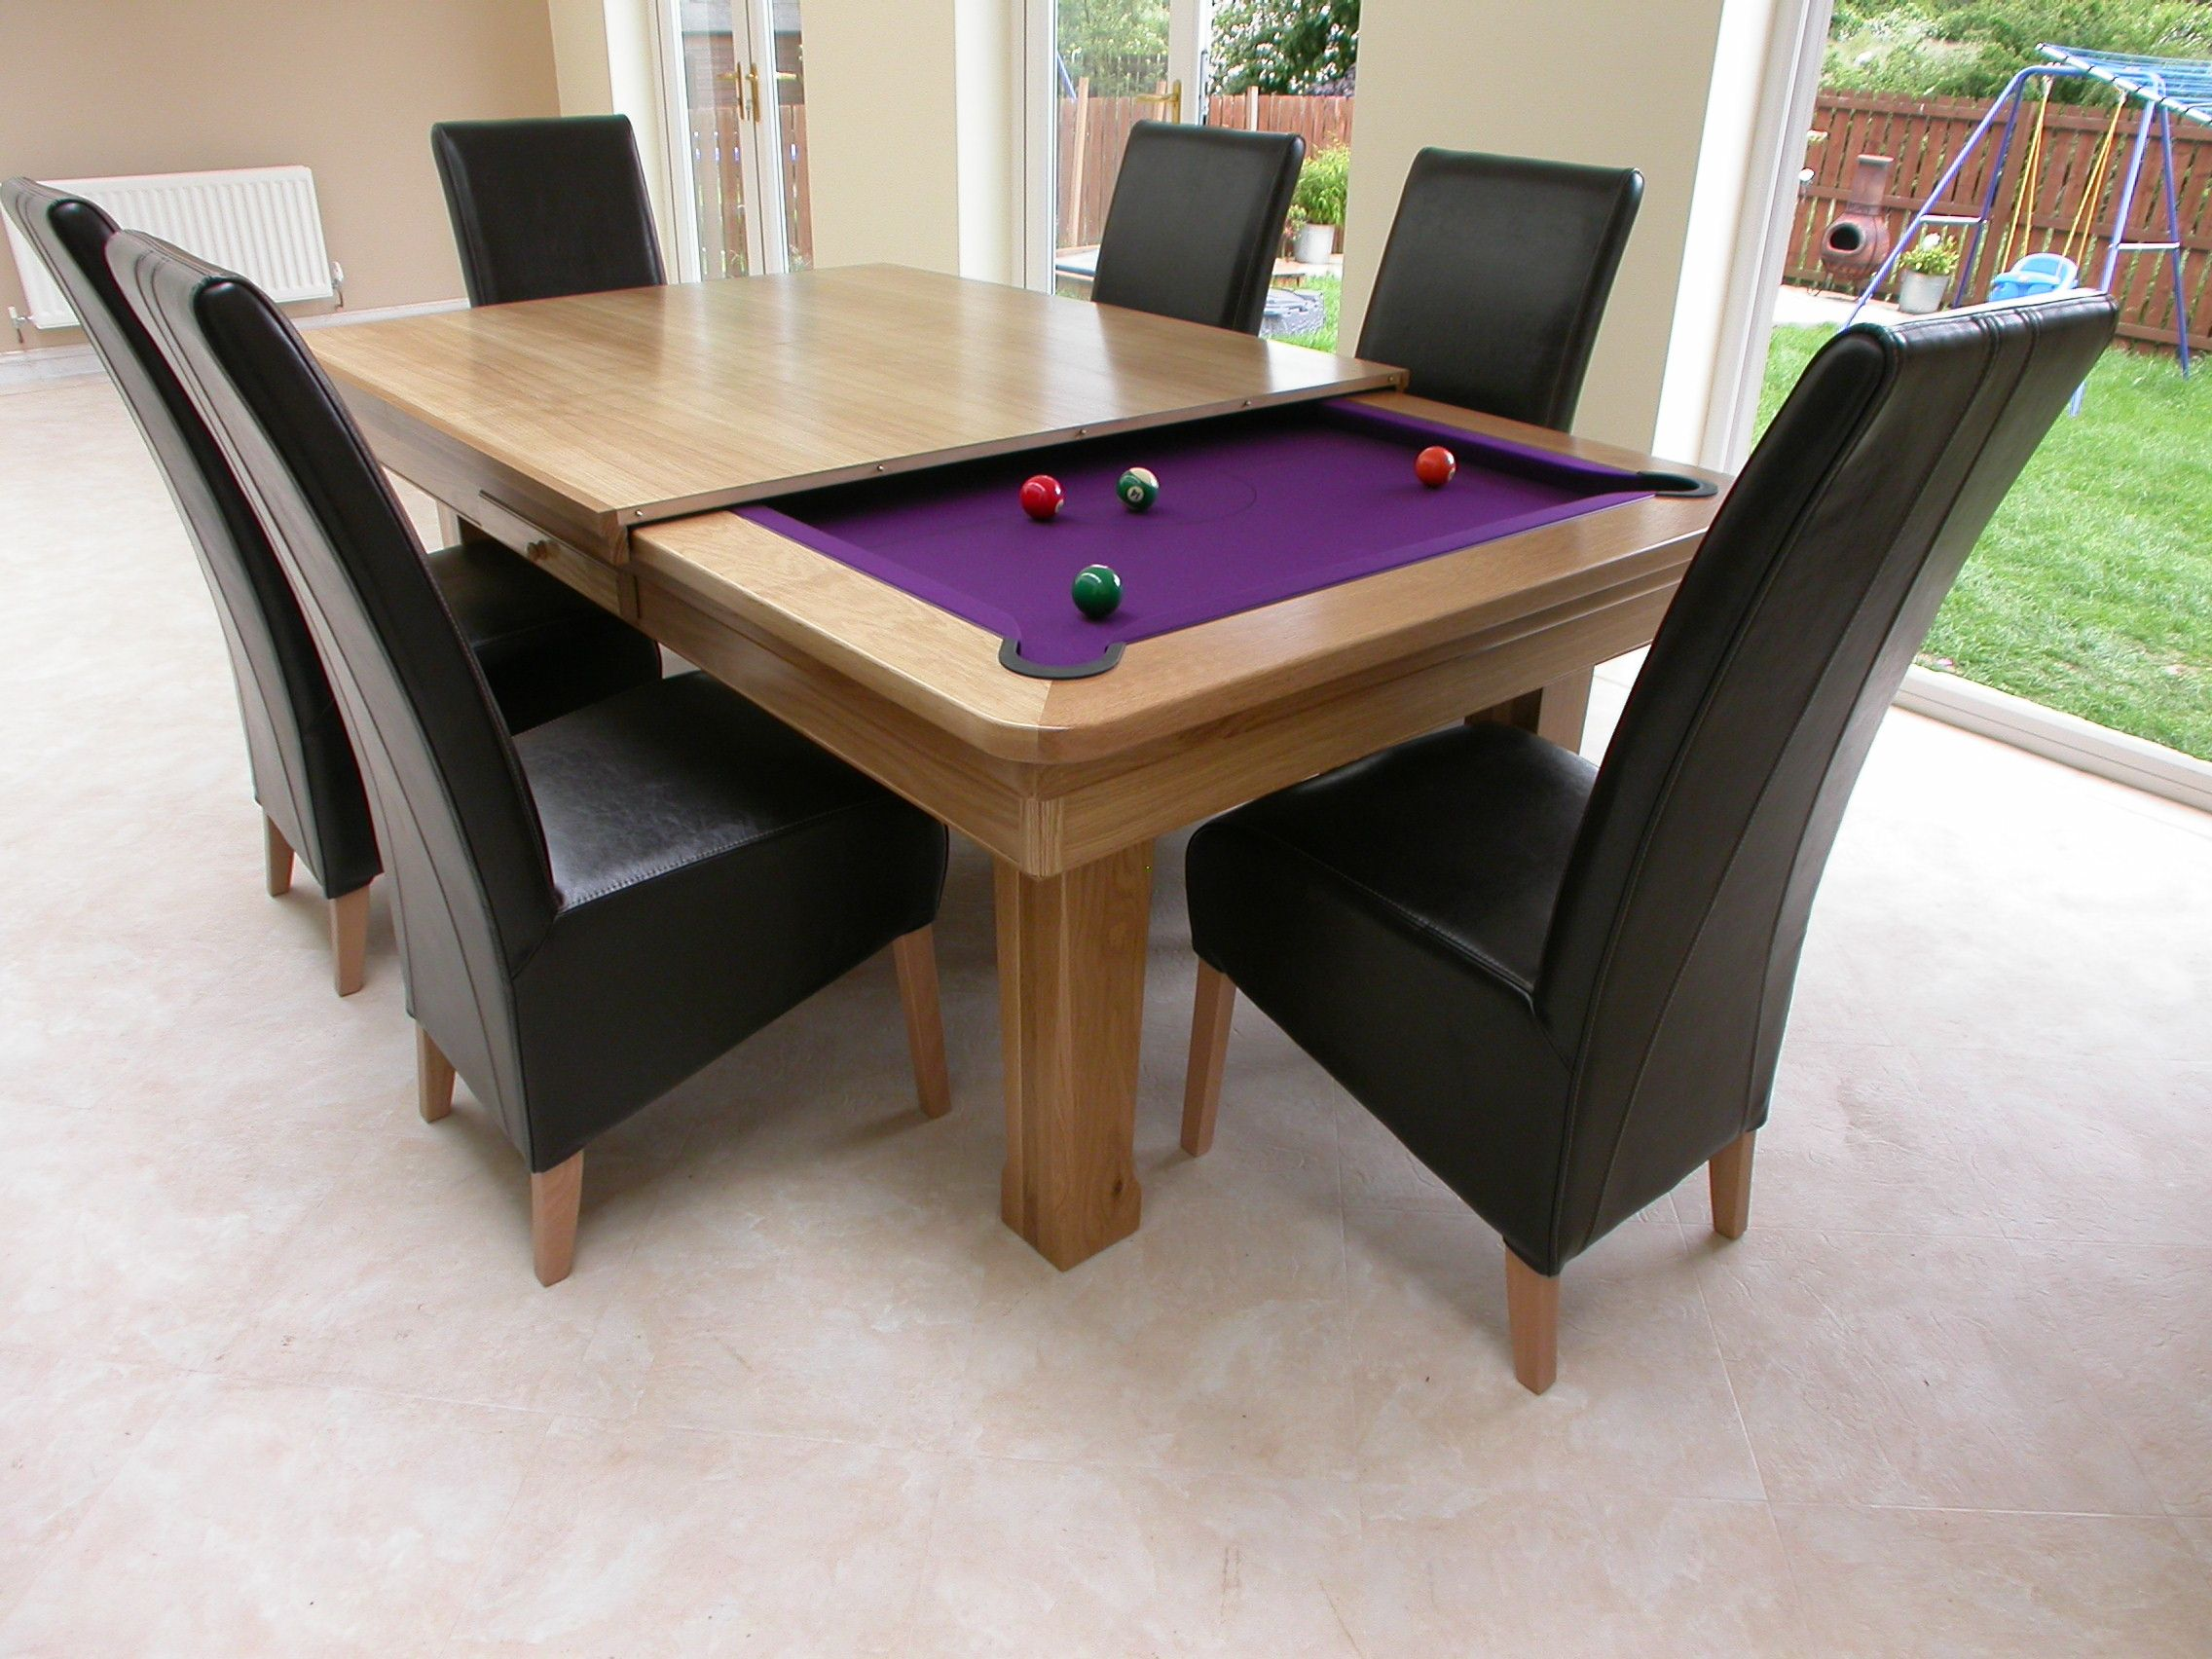 dining table pool table Дом, Столовая